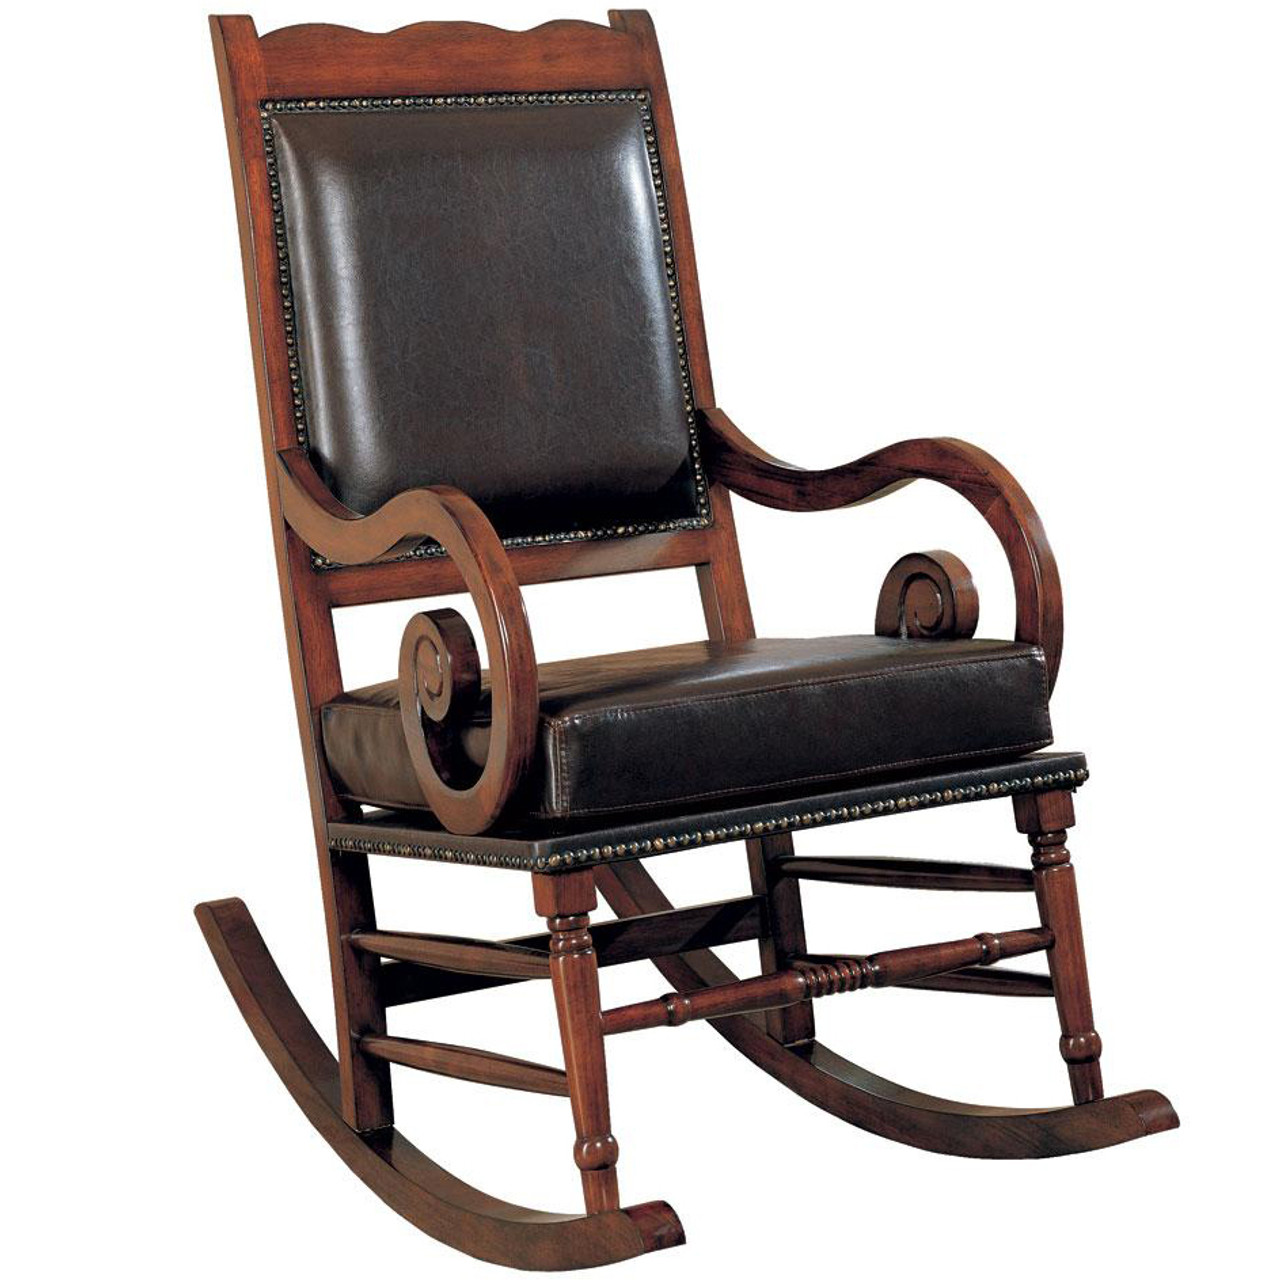 Leather Rocking Chair Raleigh Walnut Upholstered Rocking Chair